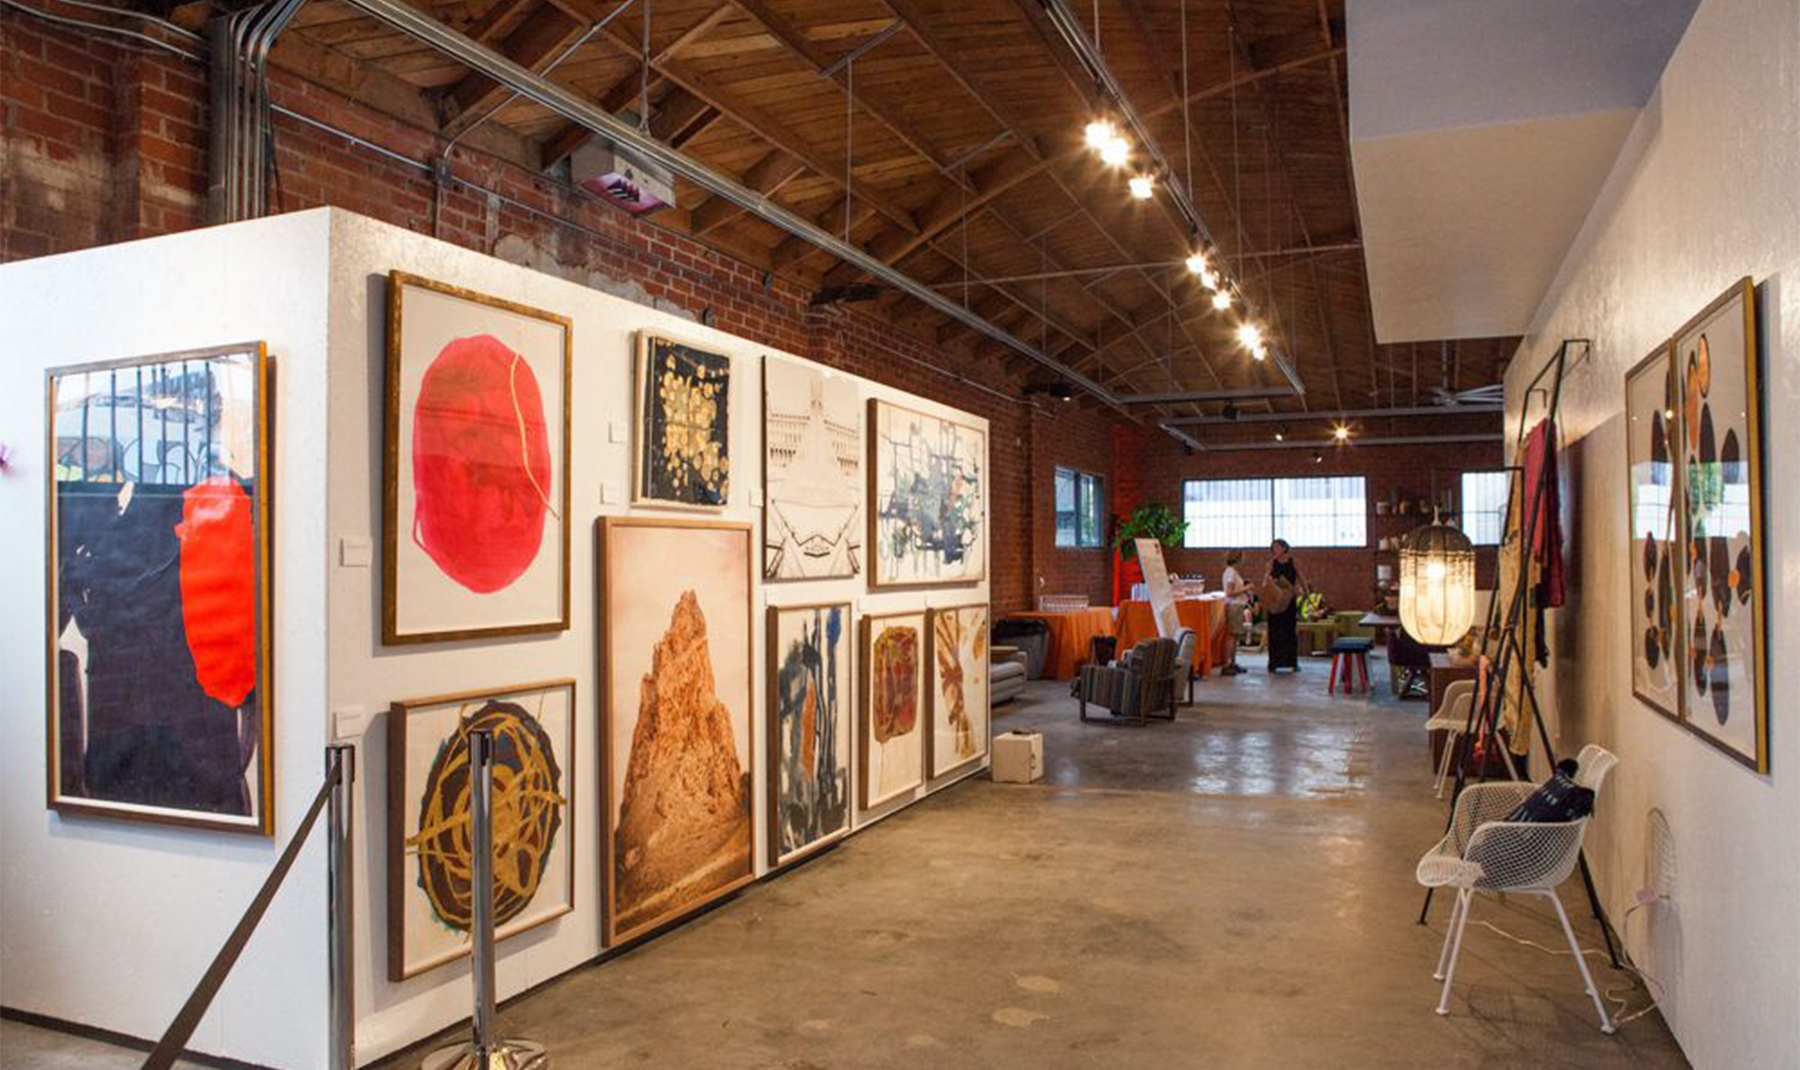 First Look Inside the A+D Architecture and Design Museum's New Space in the Arts District  Curbed - June 2015